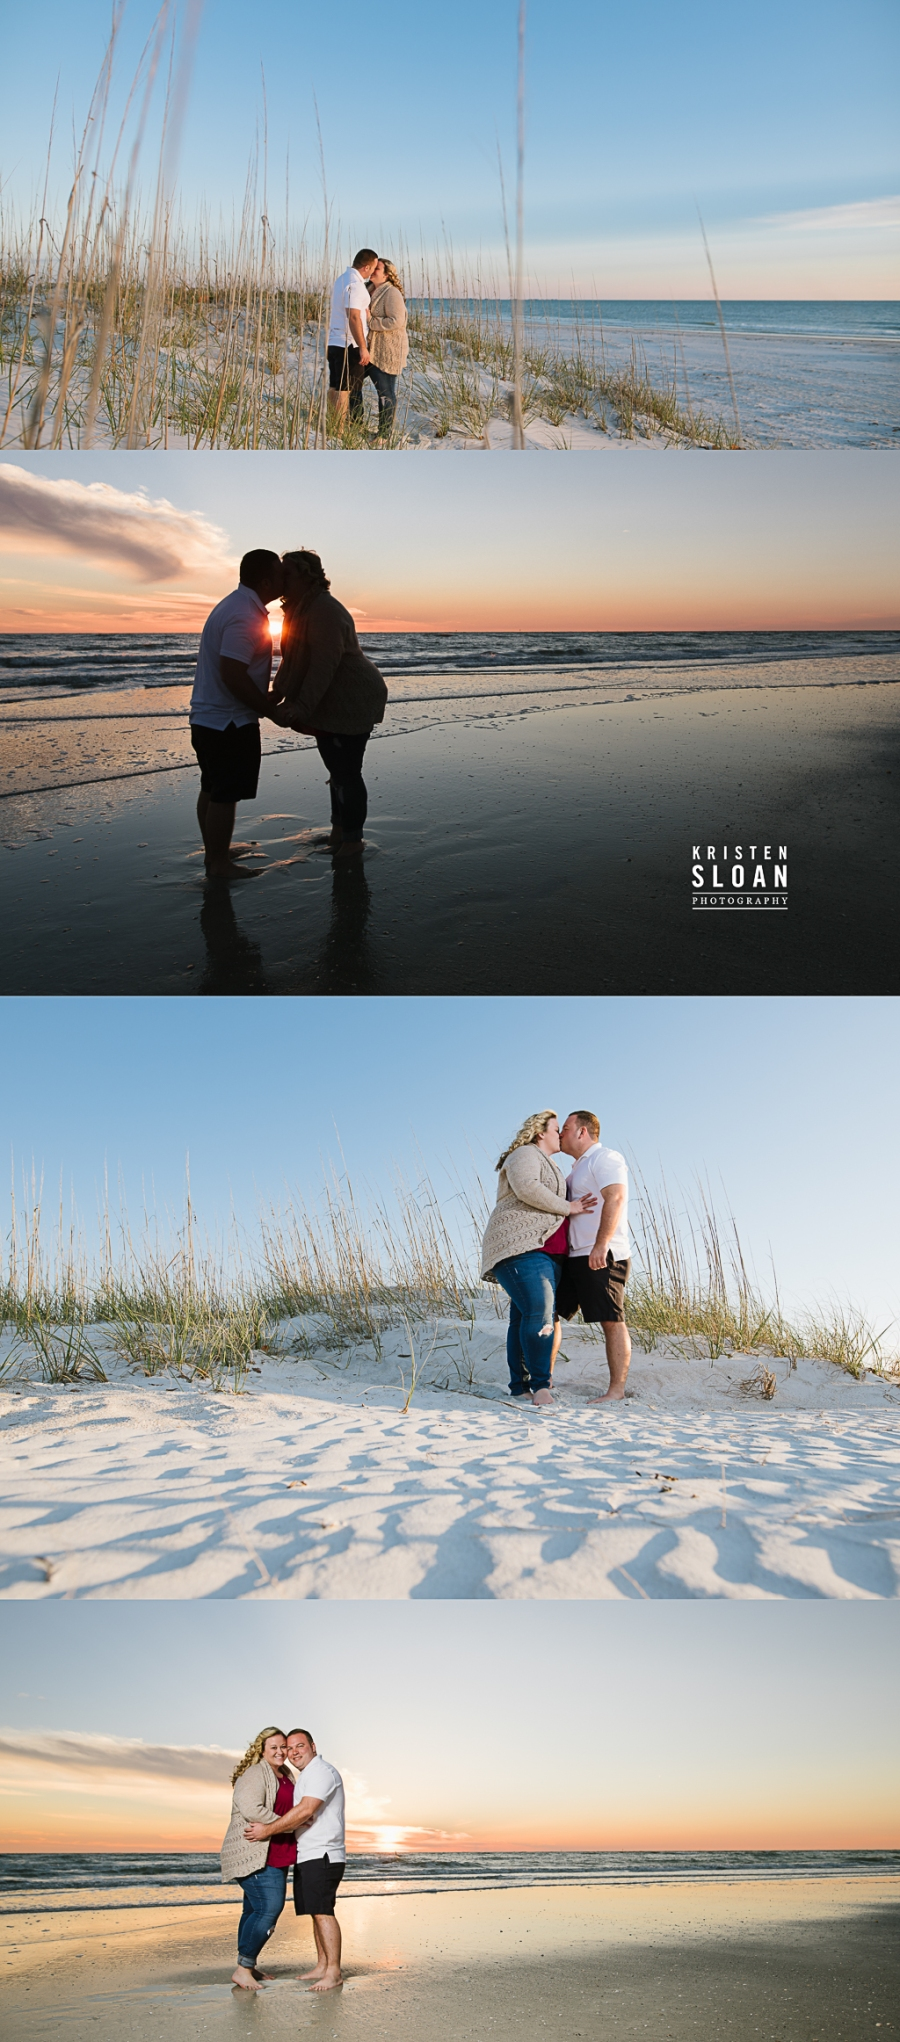 Surprise Beach Wedding Proposal | St Pete FL Wedding, Treasure Island Florida Wedding Photographer | St Pete Beach Florida Wedding Photographer Kristen Sloan